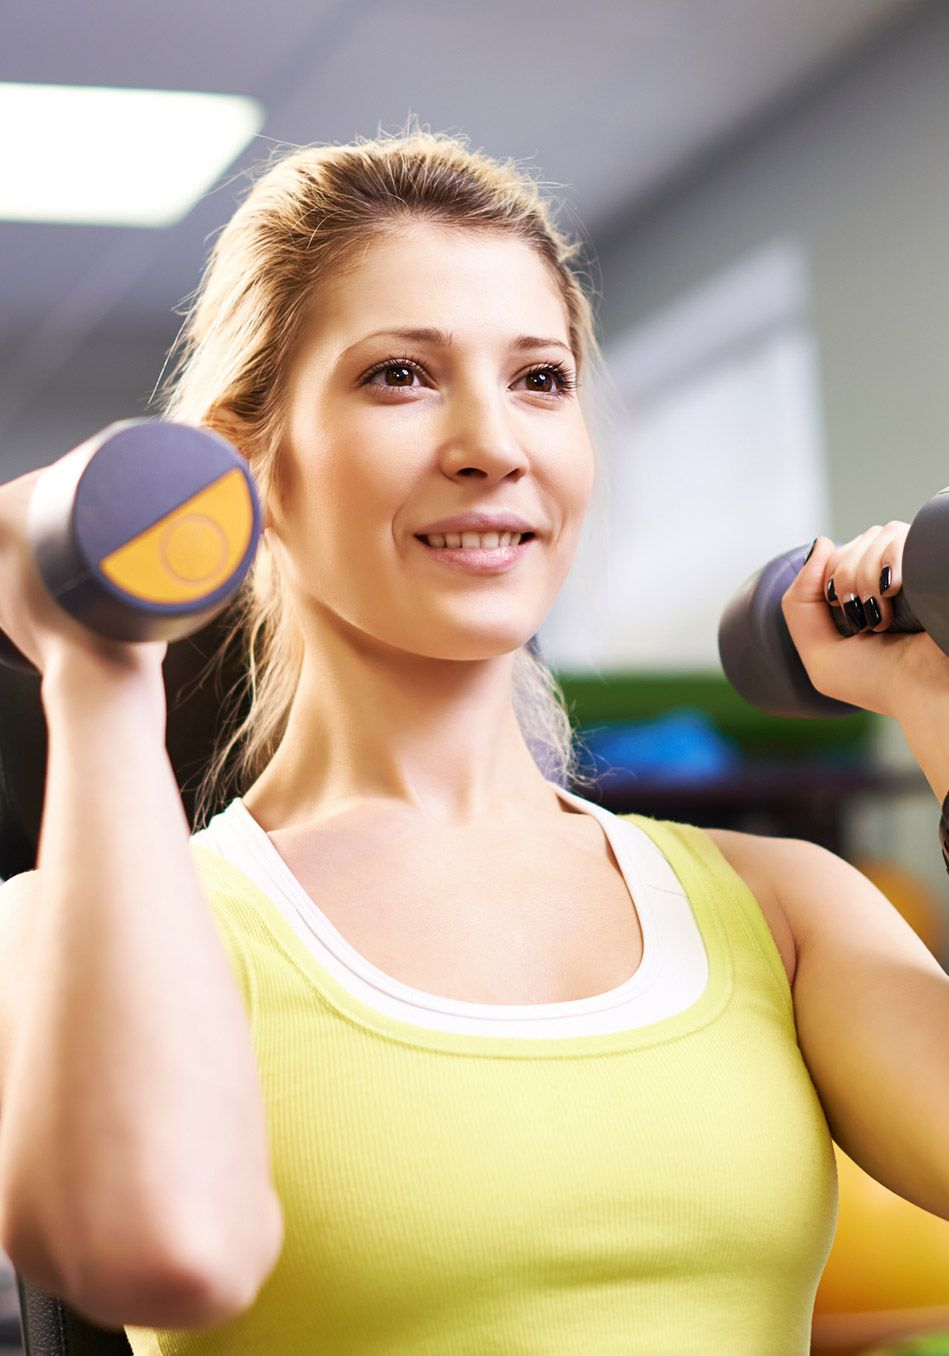 The Absolute Beginner Resistance Workout